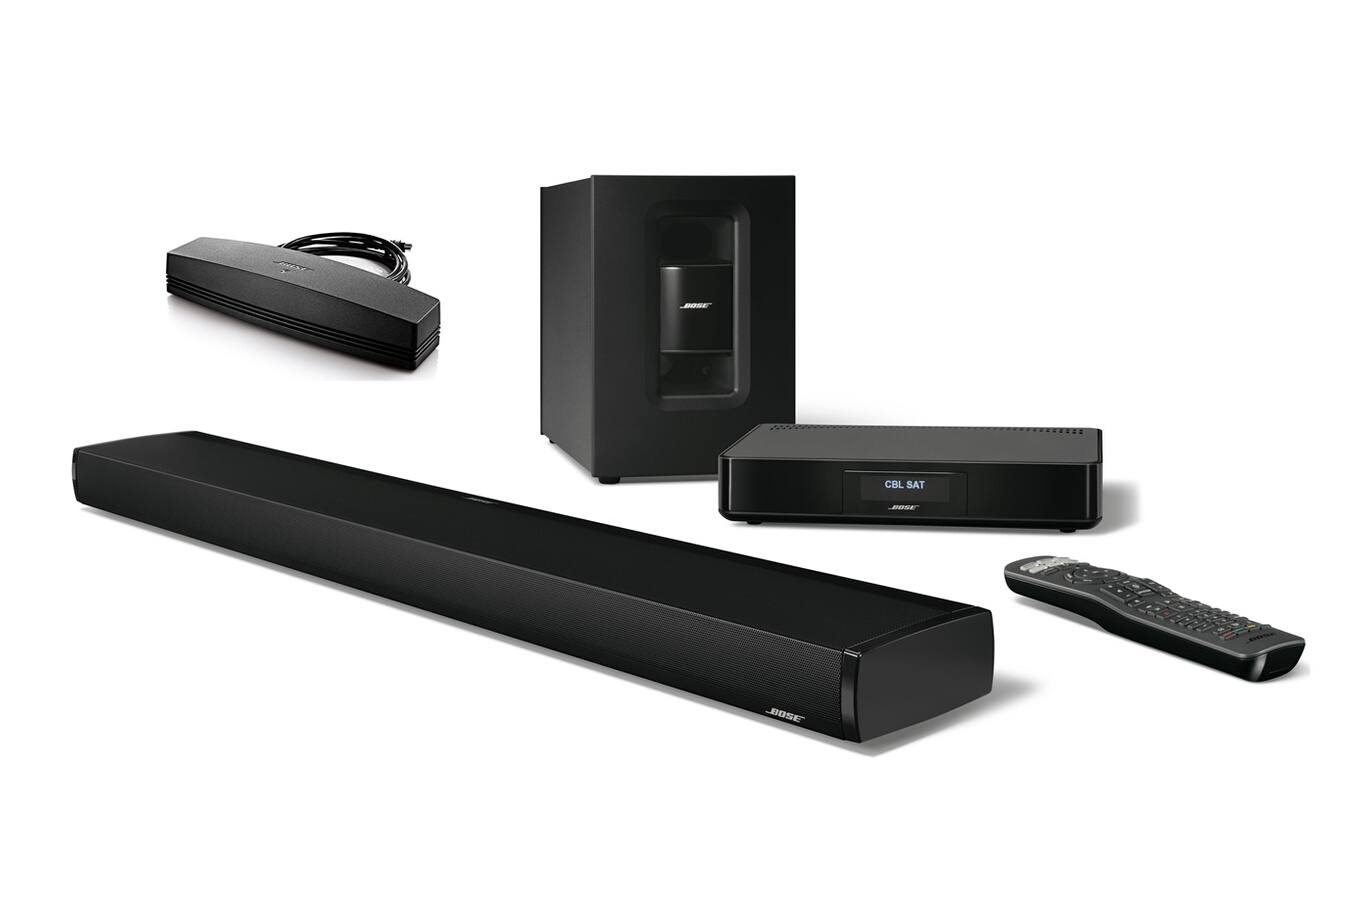 barre de son bose cinemate 130 adaptateur soundtouch. Black Bedroom Furniture Sets. Home Design Ideas